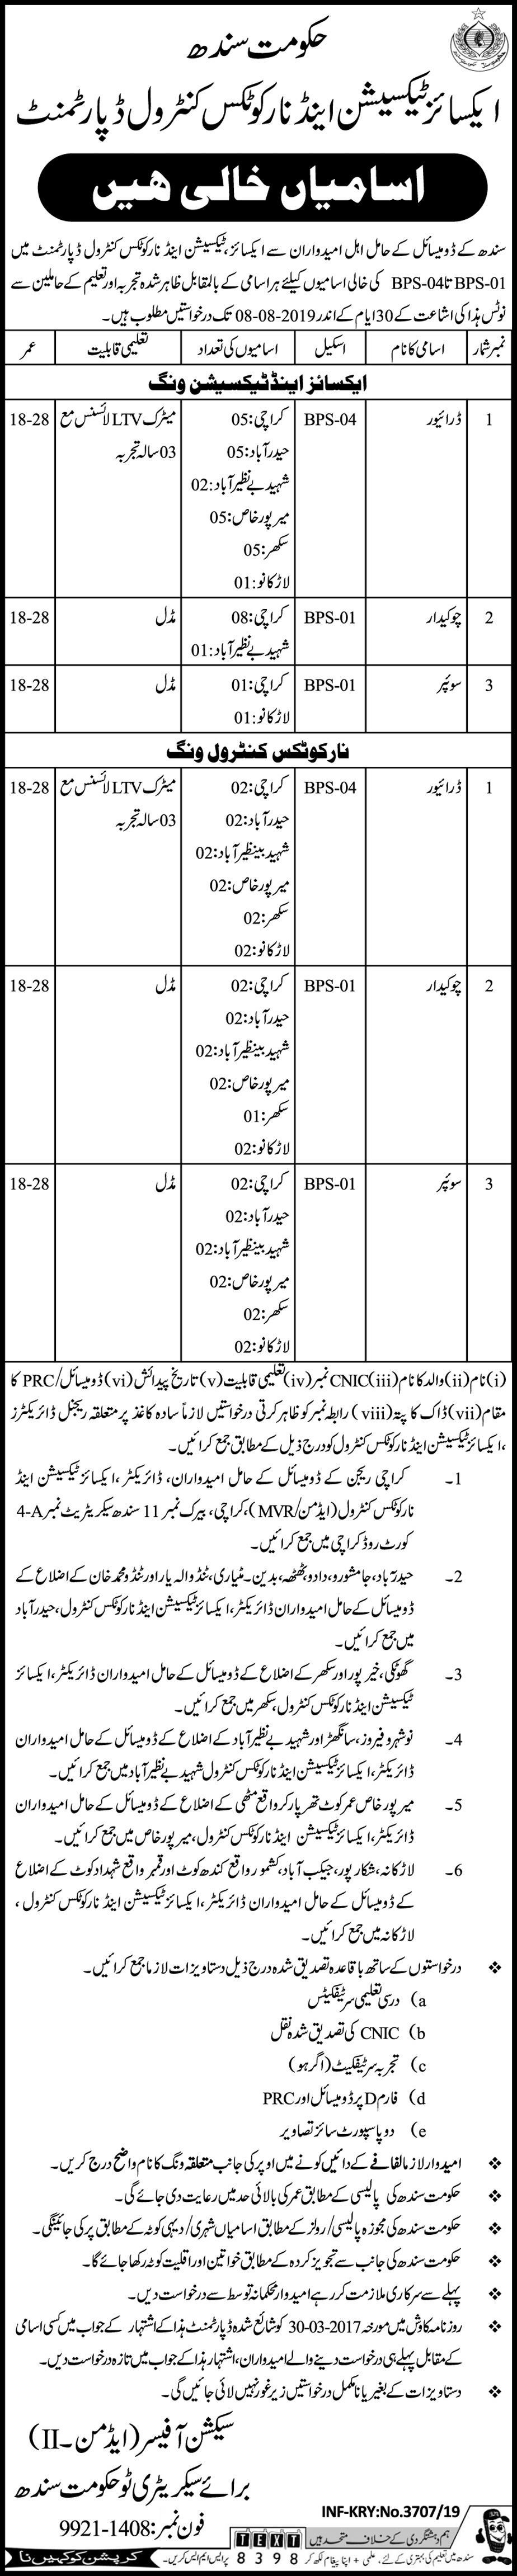 Excise Taxation and Narcotics Control Jobs